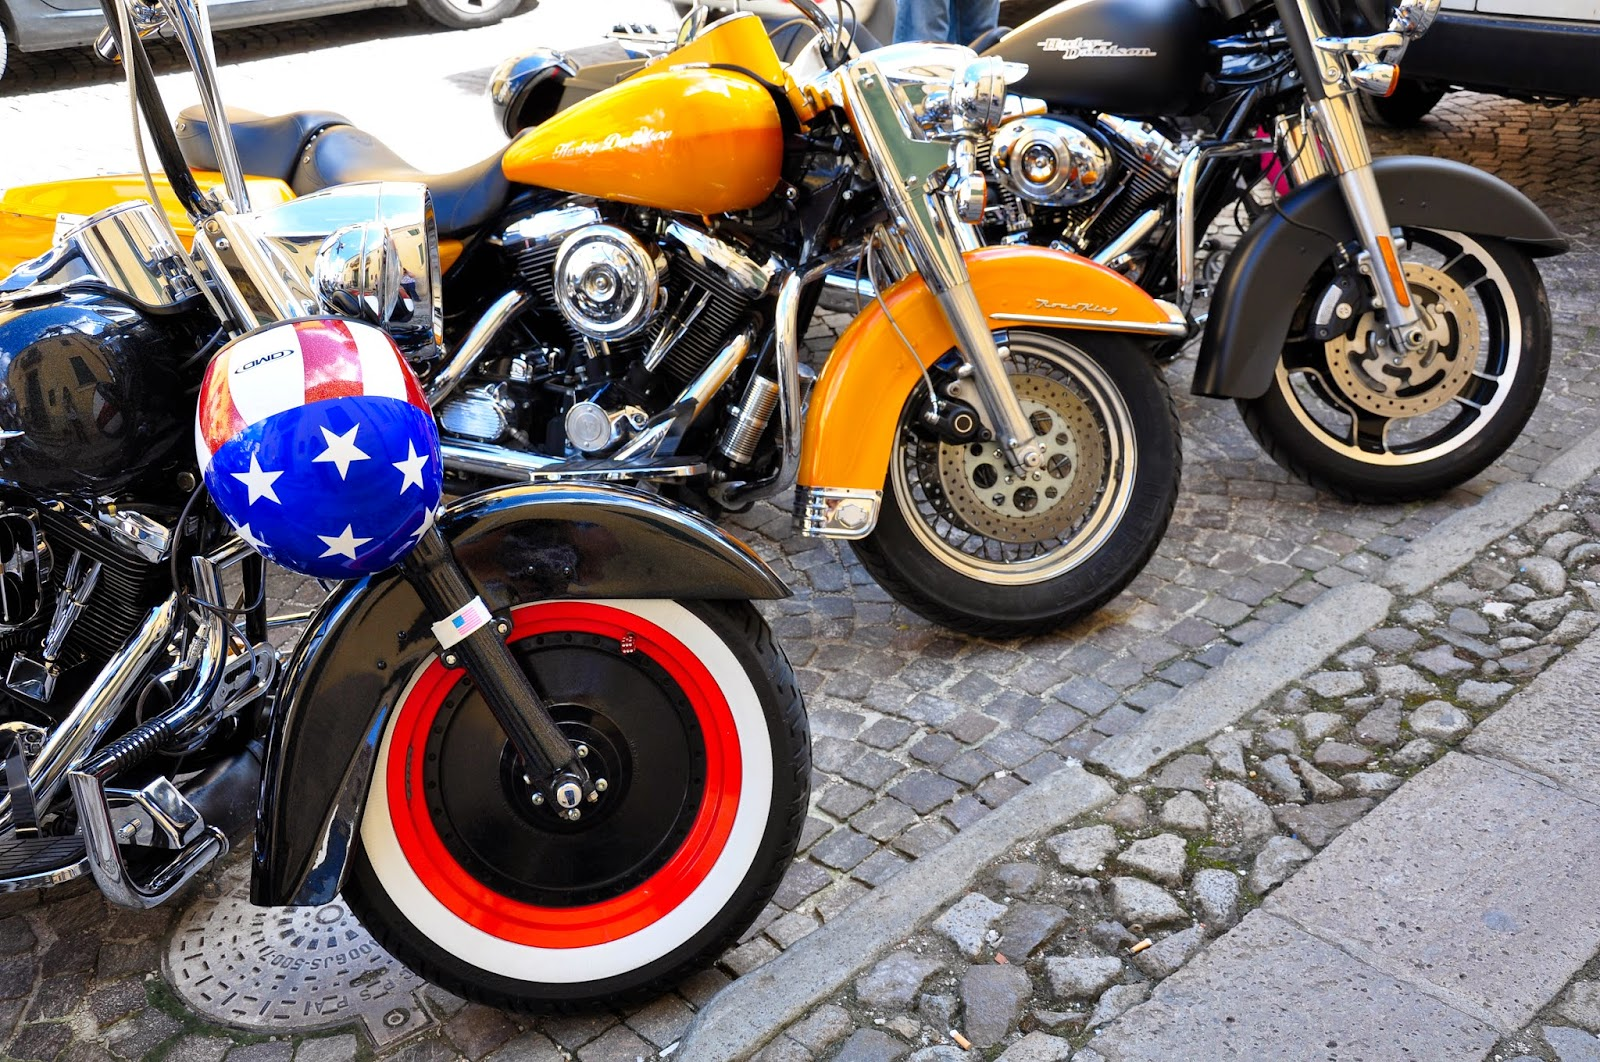 Motorcycles' front wheels in Montagnana, Veneto, Italy